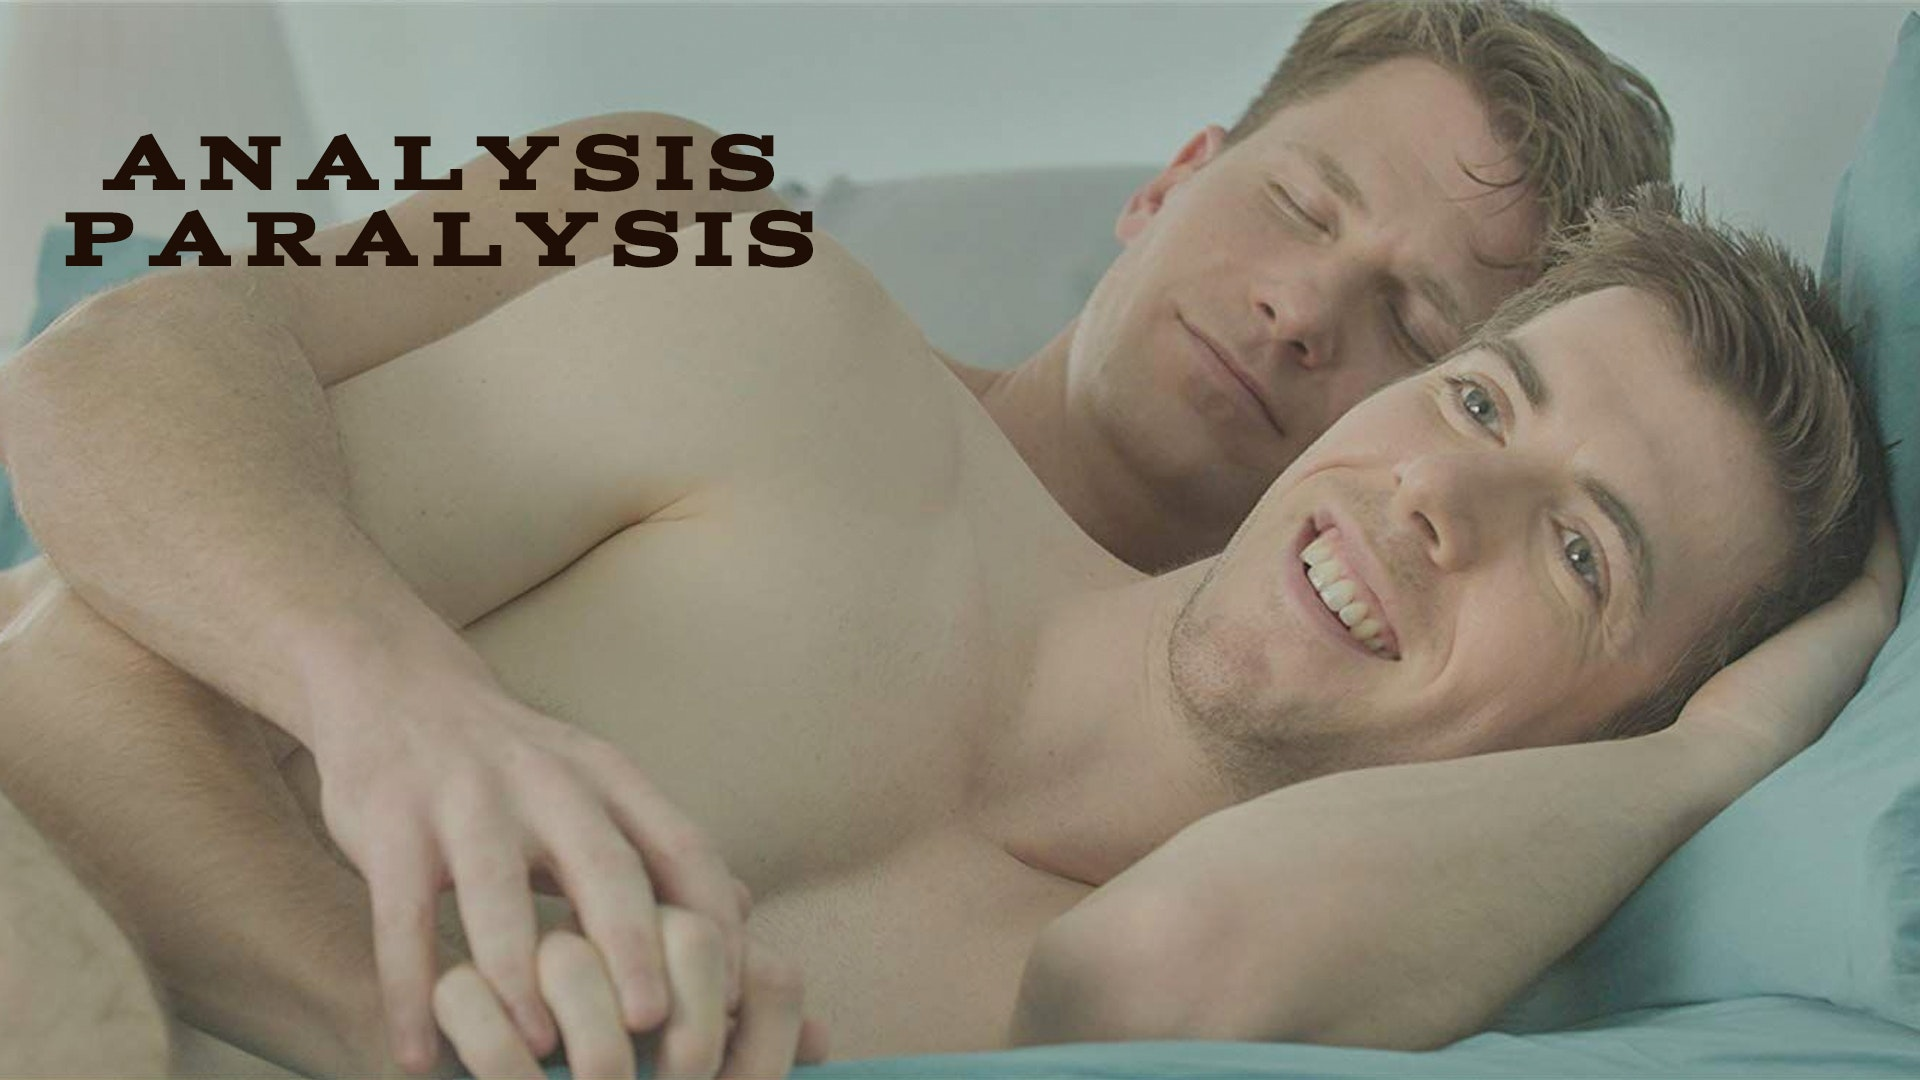 The hot desire of skin on skin gay lovers